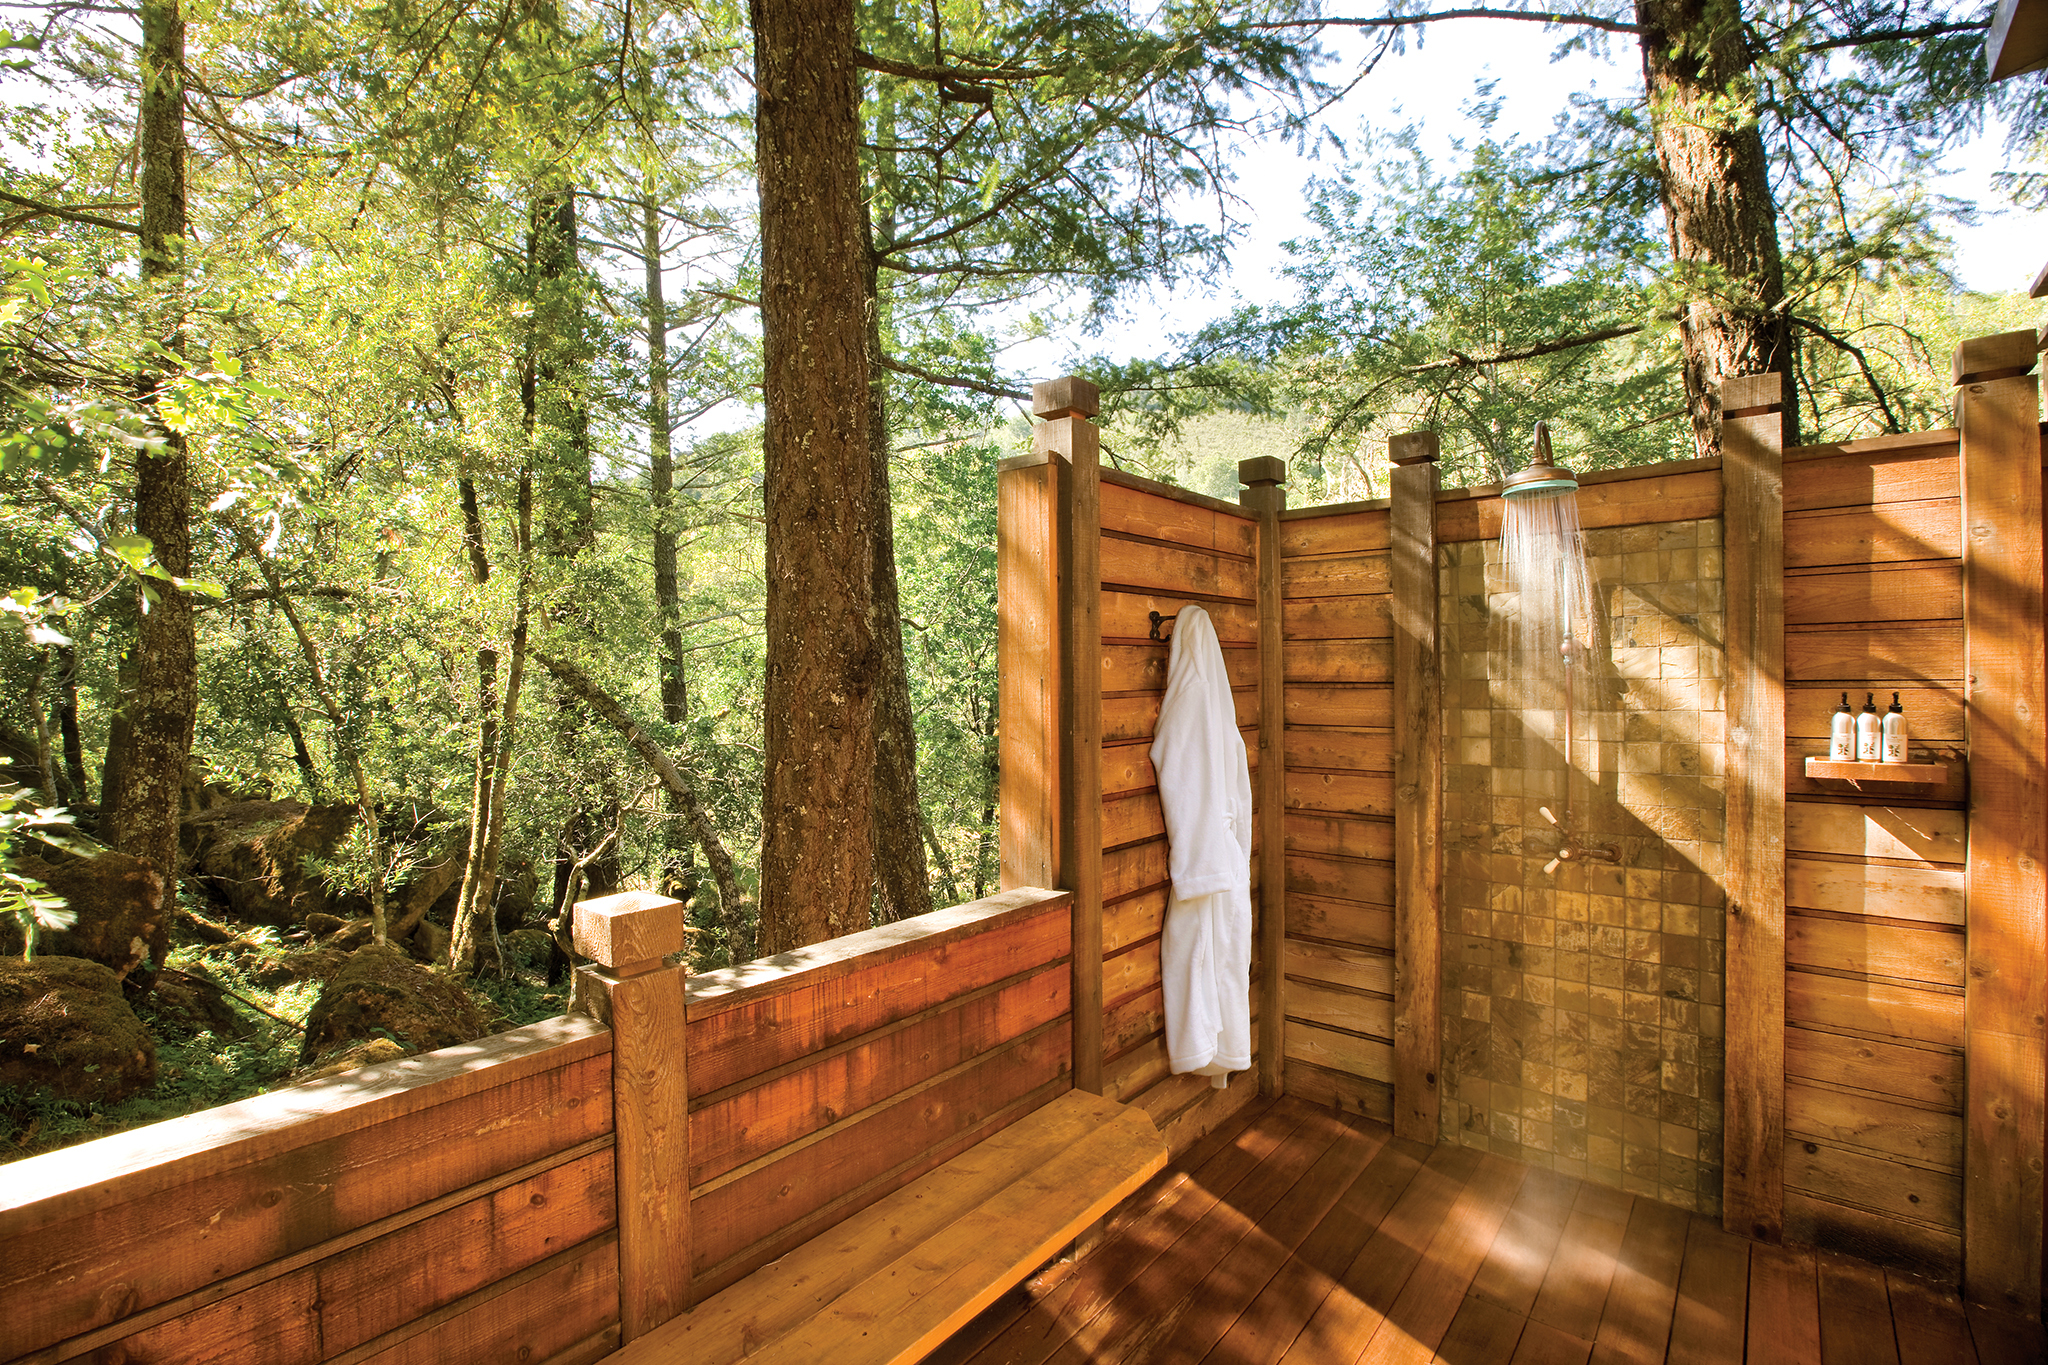 Best Napa Hotels And Spas